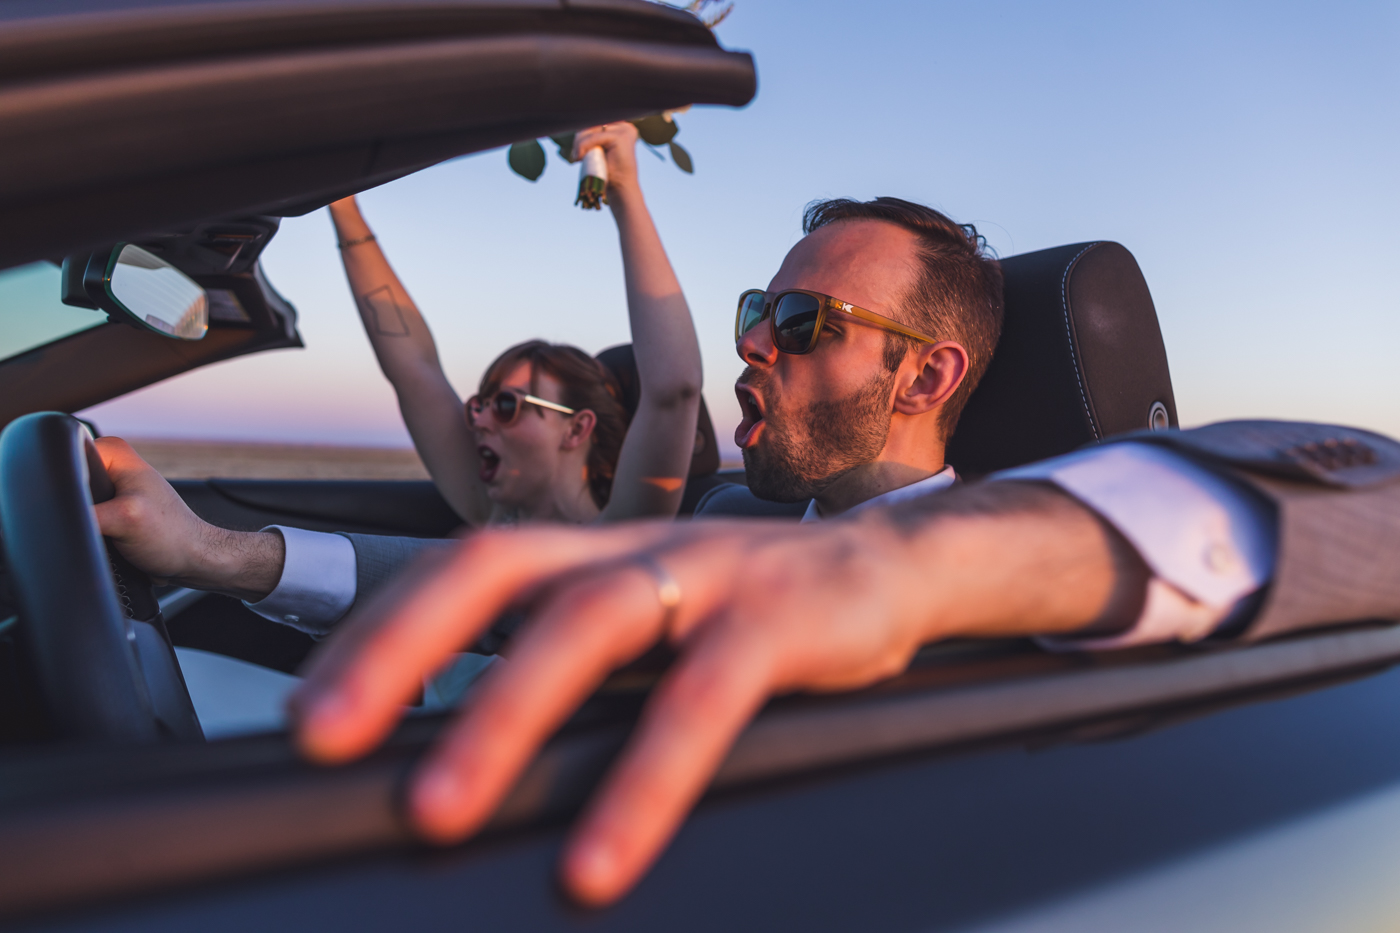 fun-bride-and-groom-riding-off-into-sunset